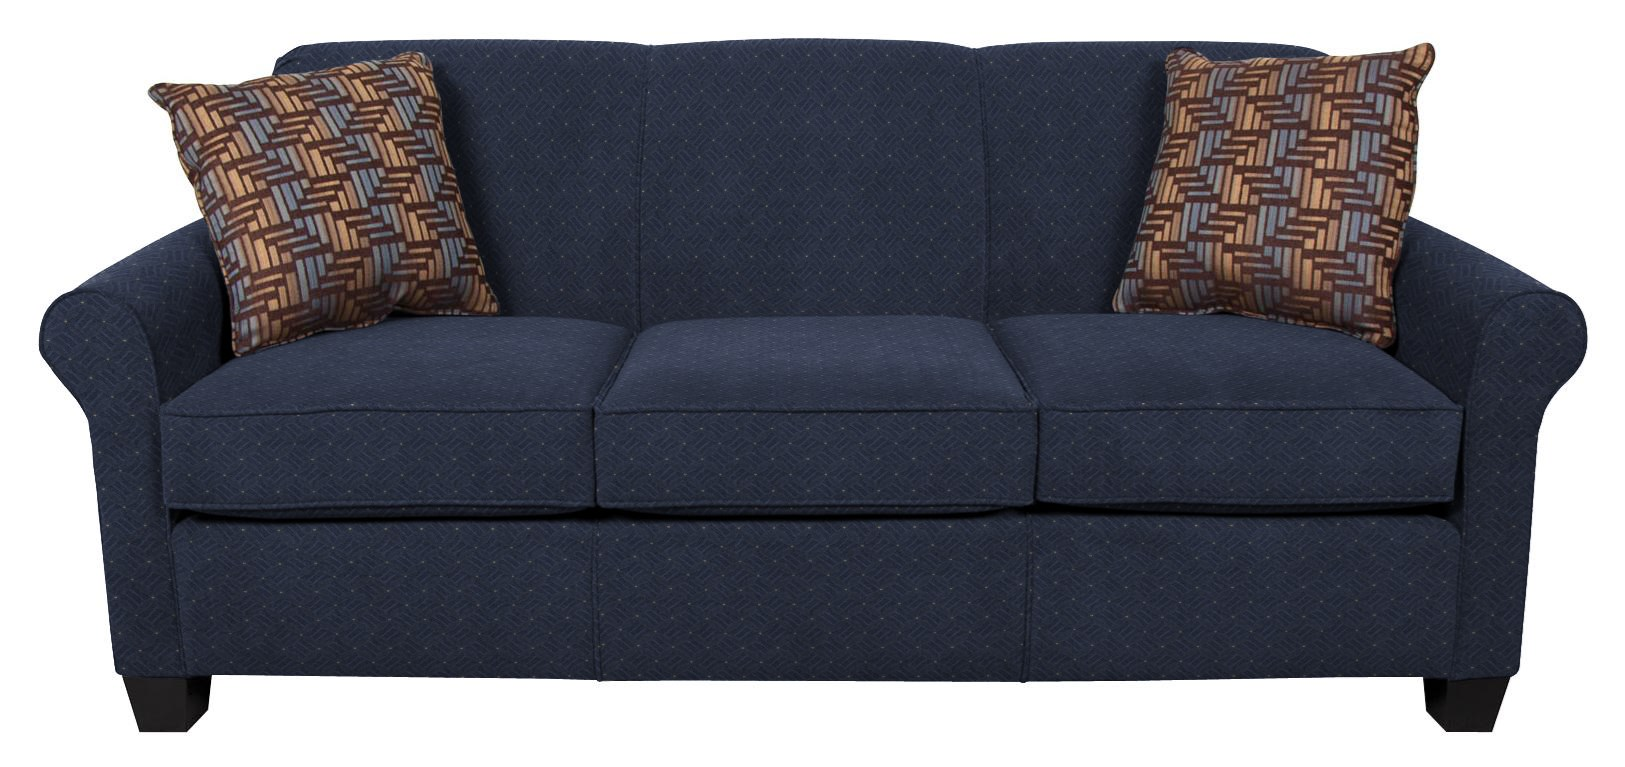 Angie  Queen Sleeper Sofa with Comfort 3 Mattress by England at Van Hill Furniture